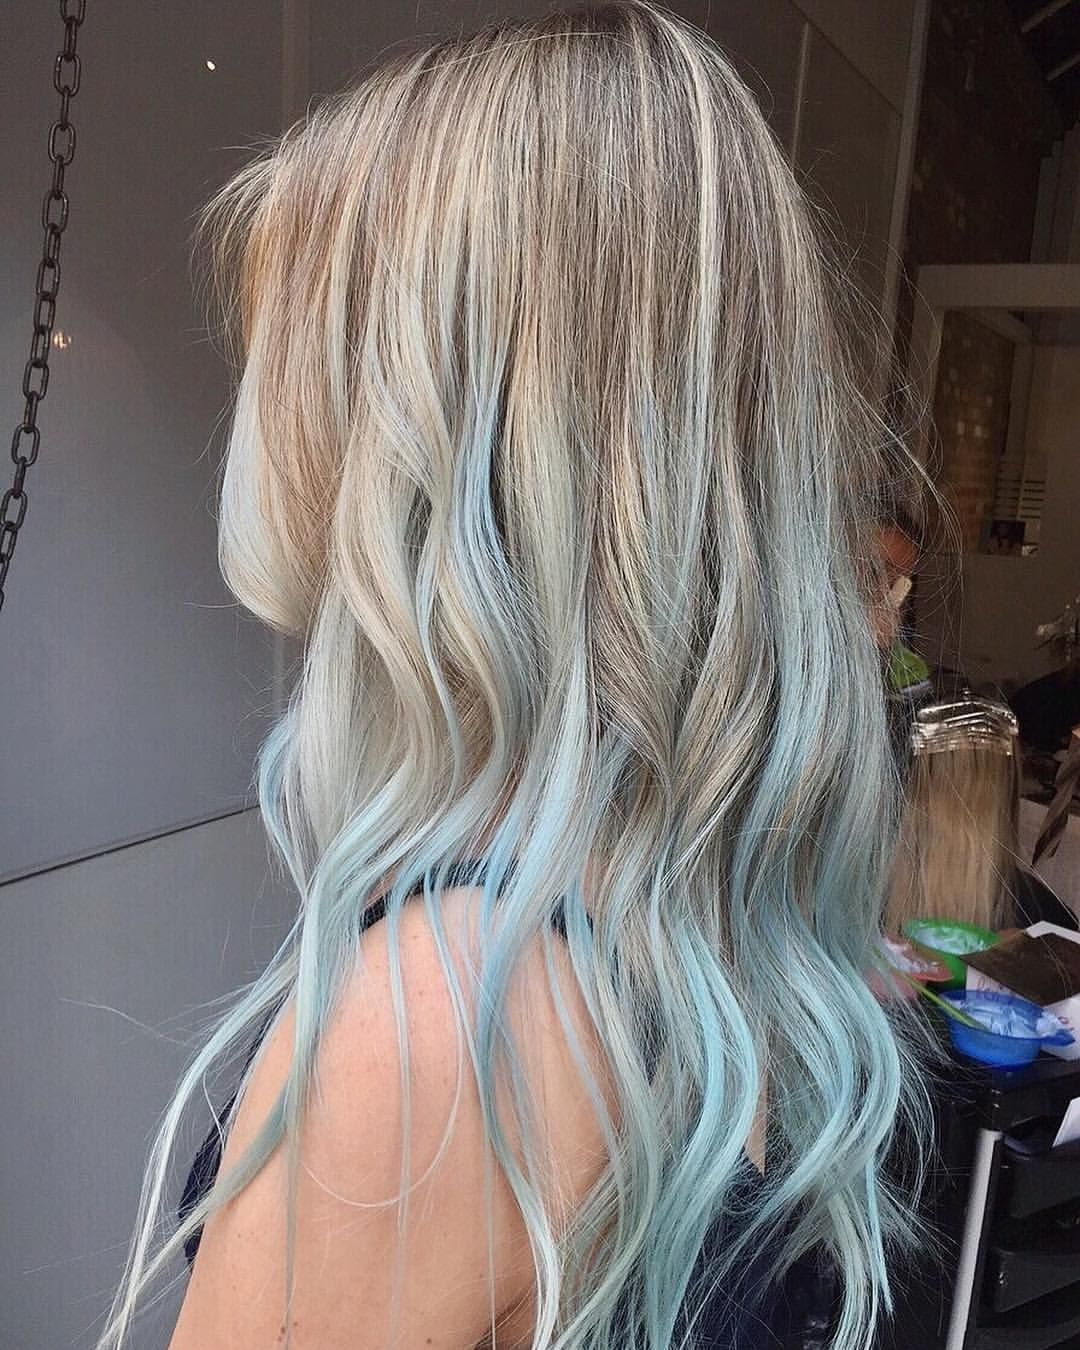 Instagram Post By Blonde Hair Colour Studios Nov 22 2017 At 9 09am Utc 200 Likes 7 Comments Blonde In 2020 Blonde And Blue Hair Light Blue Hair Hair Dye Tips